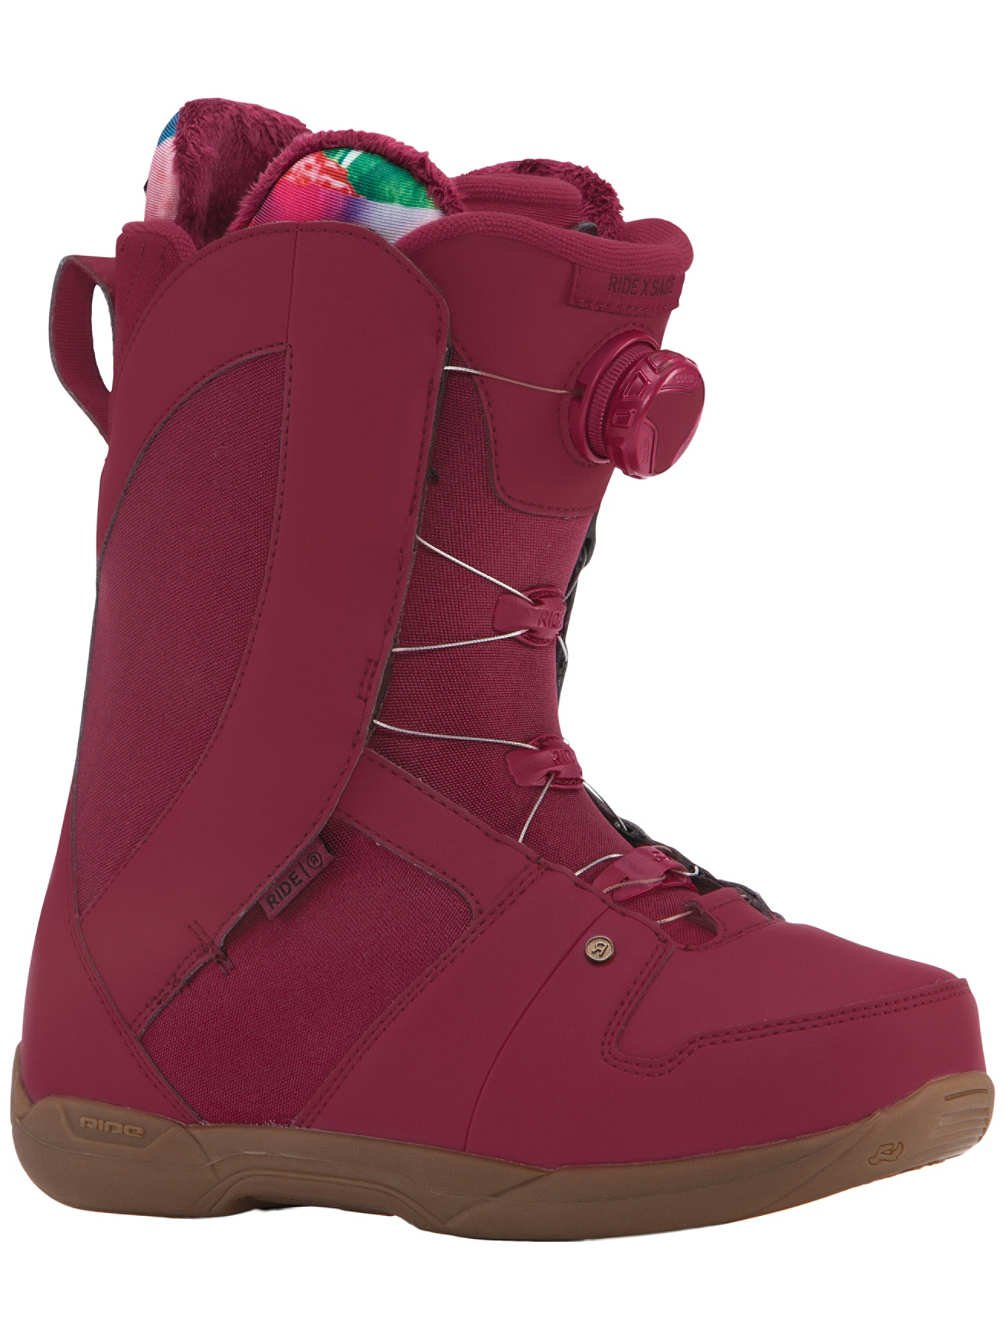 Ride Sage Boa Coiler Womens Snowboard Boots 2018 - 9.0/Maroon by Ride